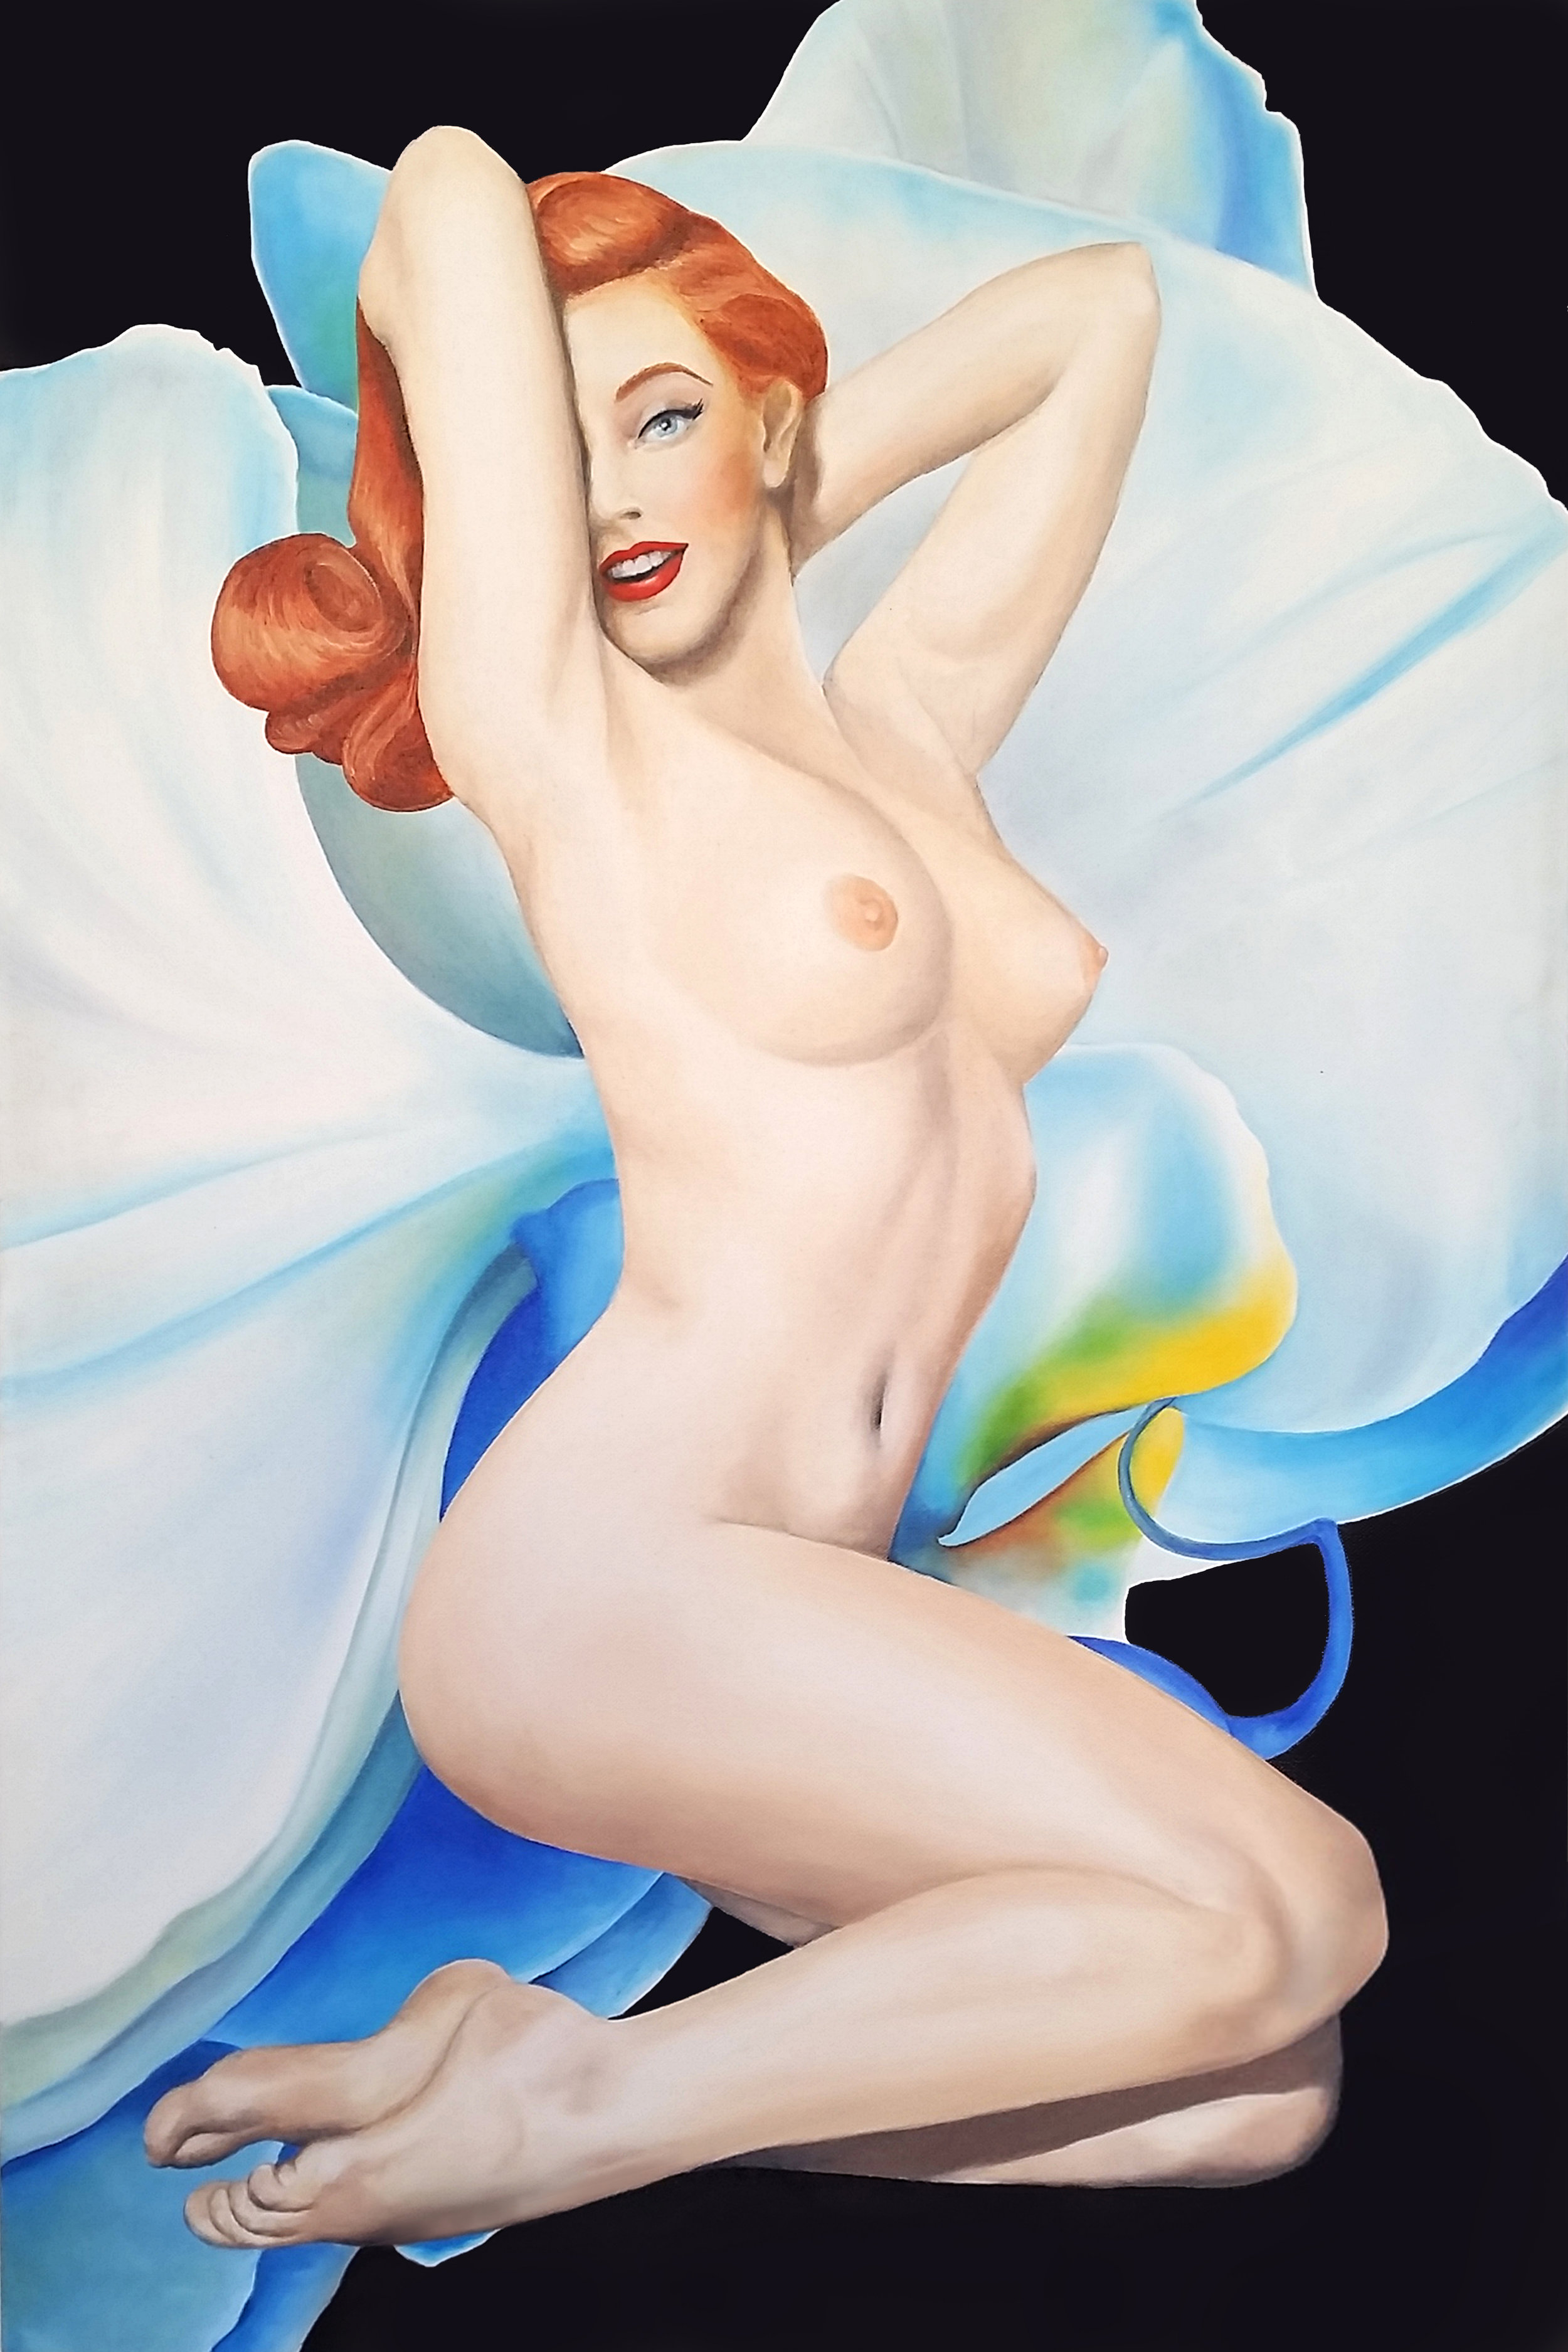 """""""The Icon"""", 2014, Ginger Del Rey  oil on canvas 36"""" x 24"""" x .6""""  $2500  This is the 2nd in my limited series of six pin-up girls set against a Georgia O'Keefe-style backdrop. The idea to marry the two images came from a photo shoot with a natural, fair-skinned redhead who was rare in her loveliness. As I studied her translucent, radiant skin - blushing gently in peach and rose with a faint bluish undertone, I couldn't help but think how very similar her skin was to the delicate petals of an orchid, fragile and rare."""